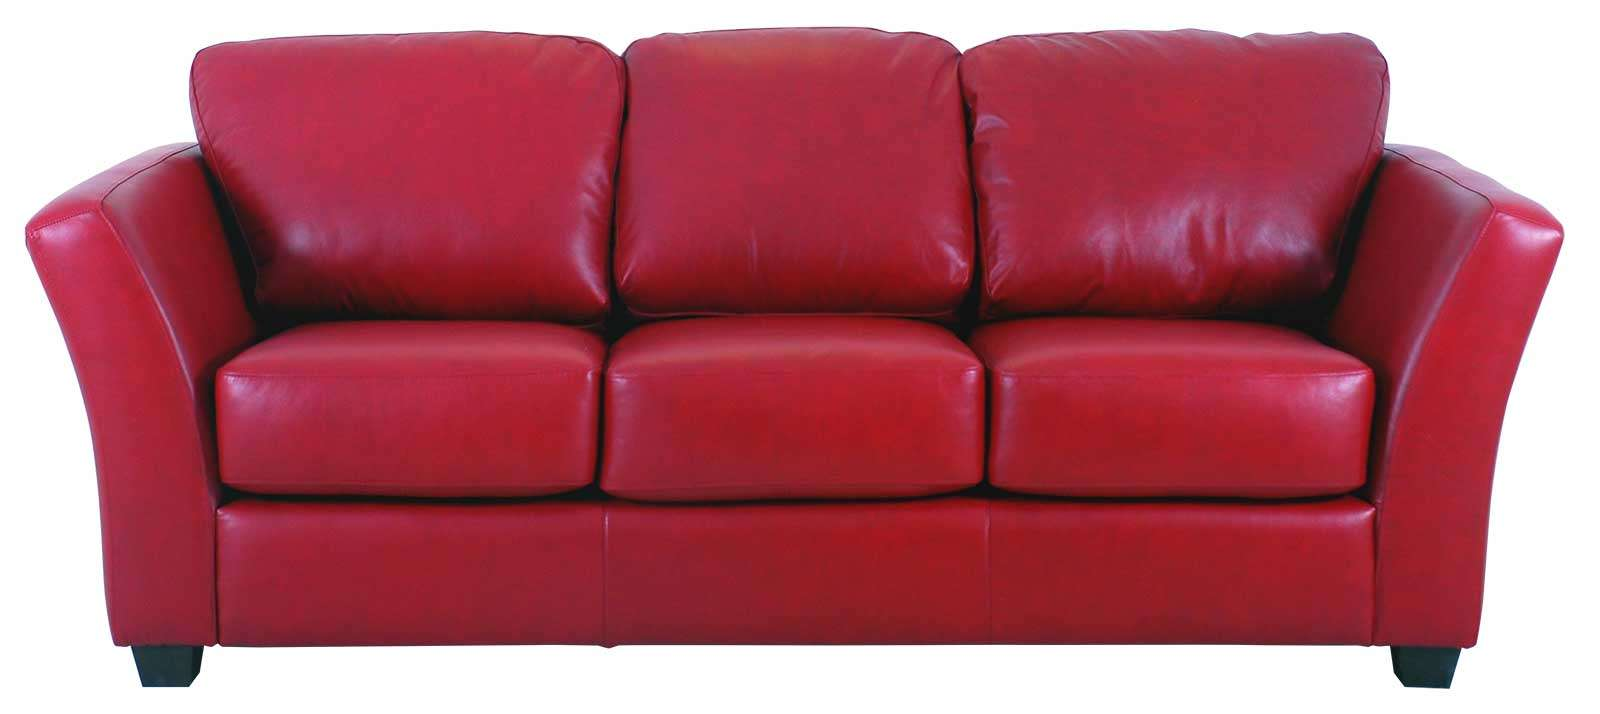 Decorating With A Red Leather Couch The Leather Sofa